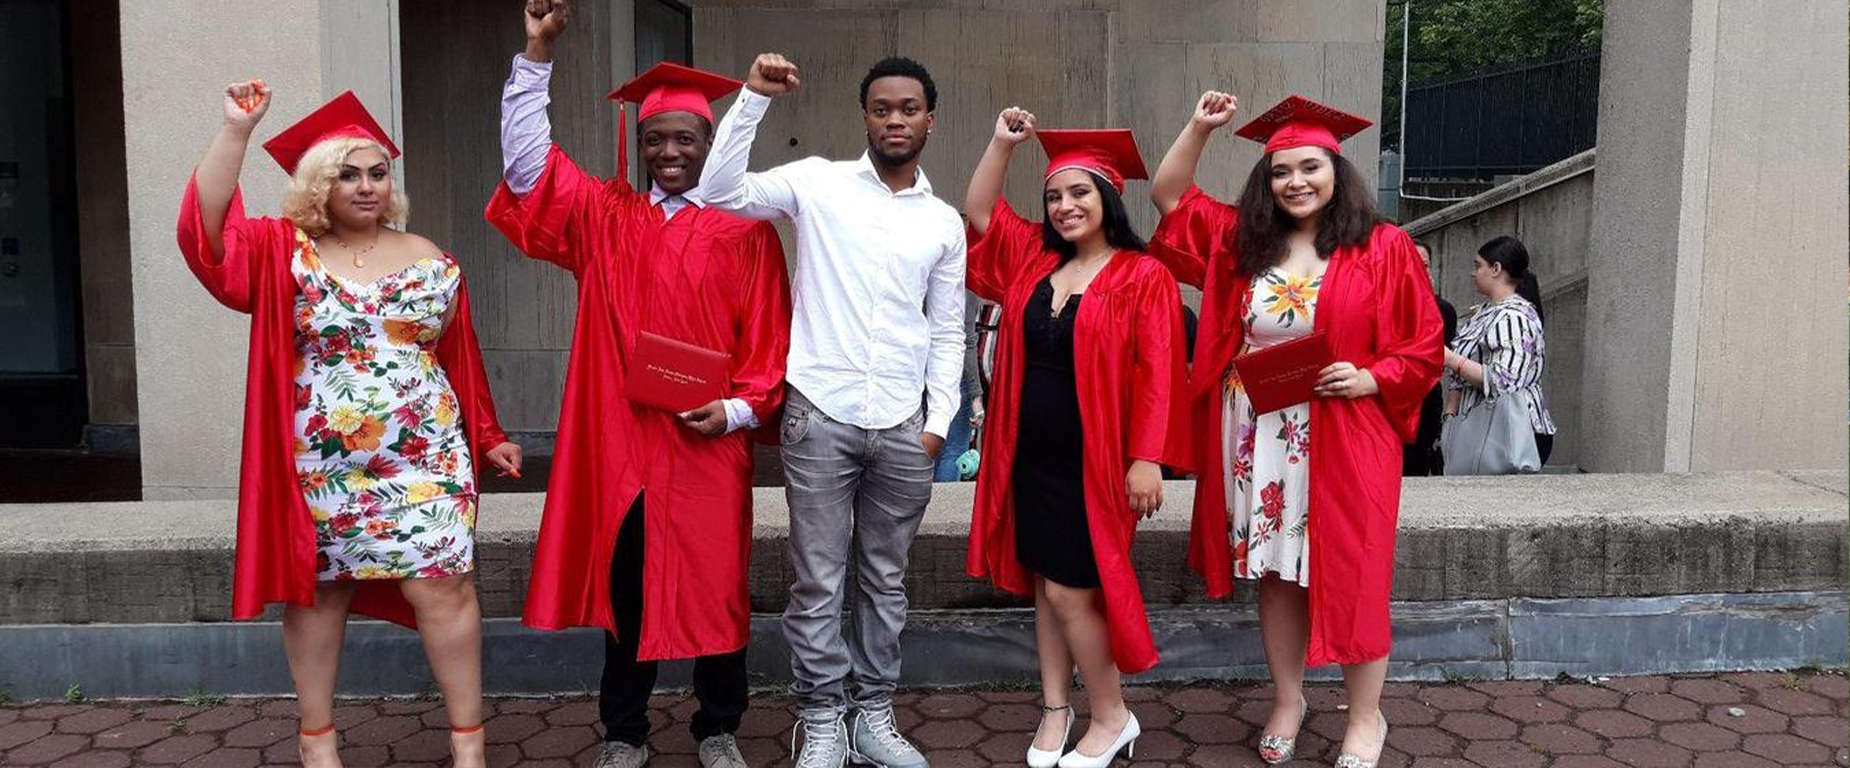 A group of graduating seniors in red cap and gowns